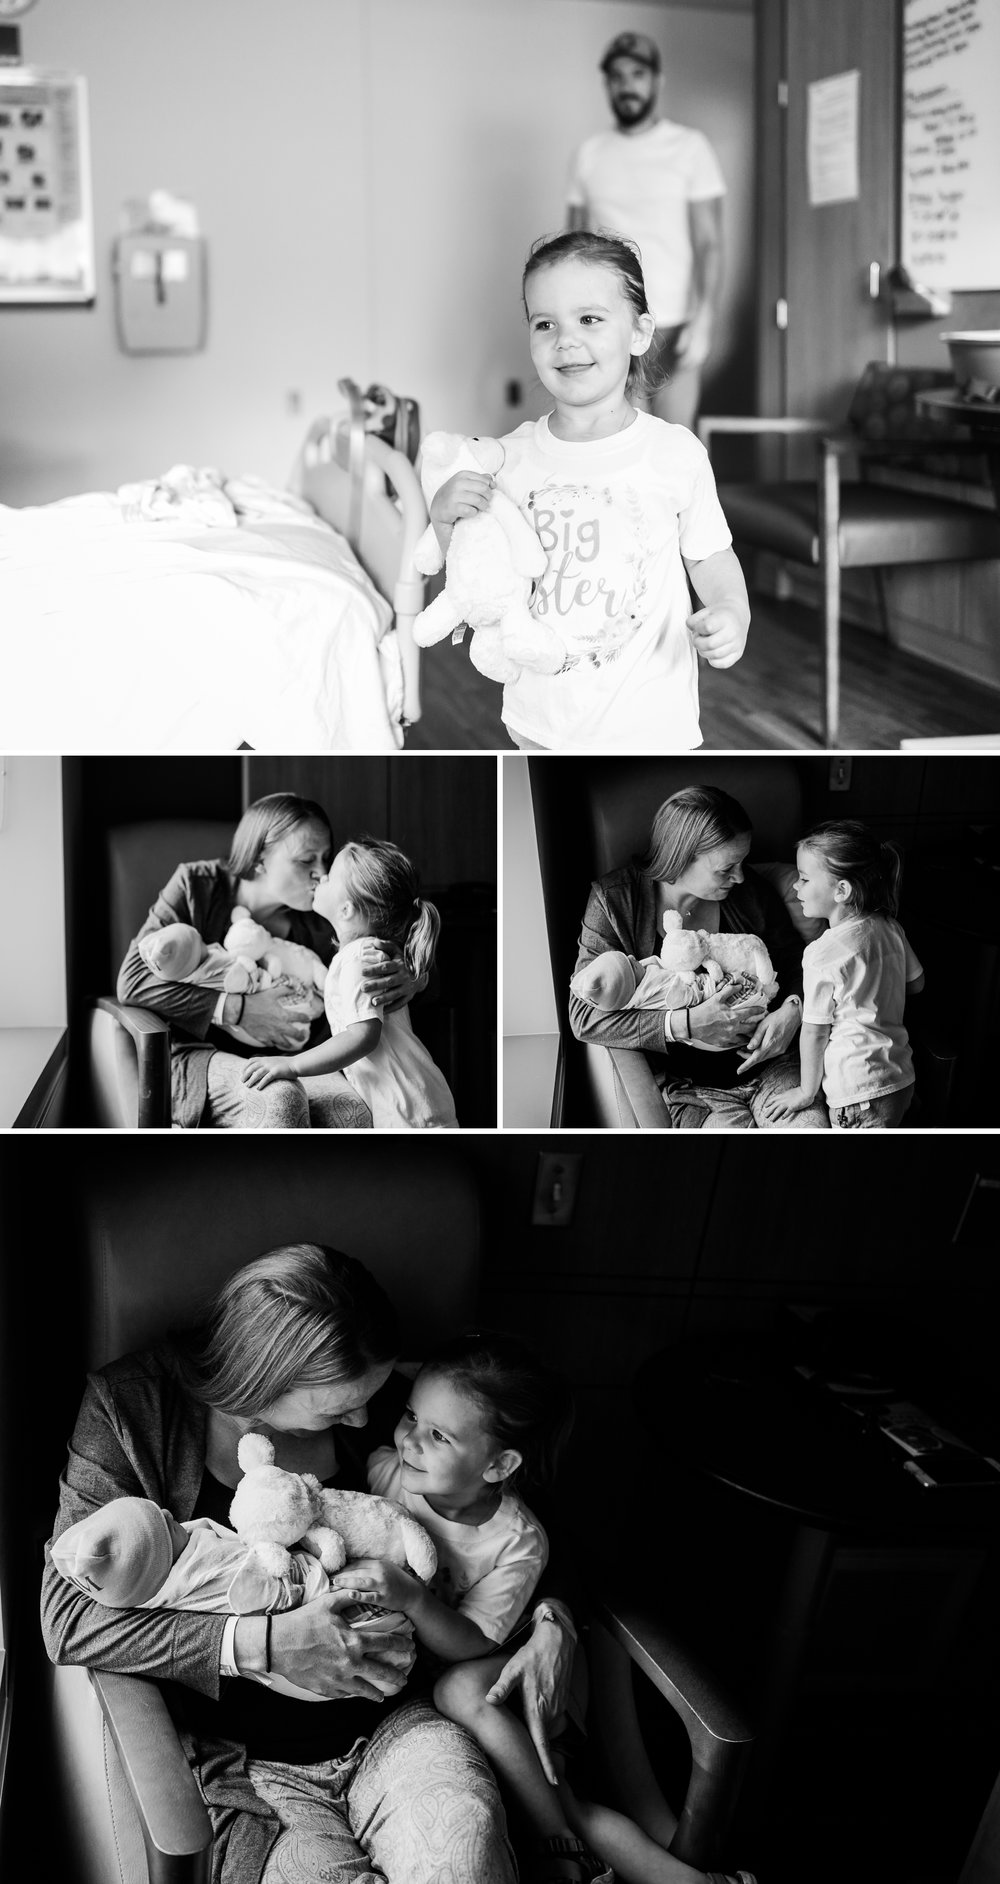 chicago-baby-fresh48-hospital-family-lifestyle-photographer-jenny-grimm-photography_0000.jpg